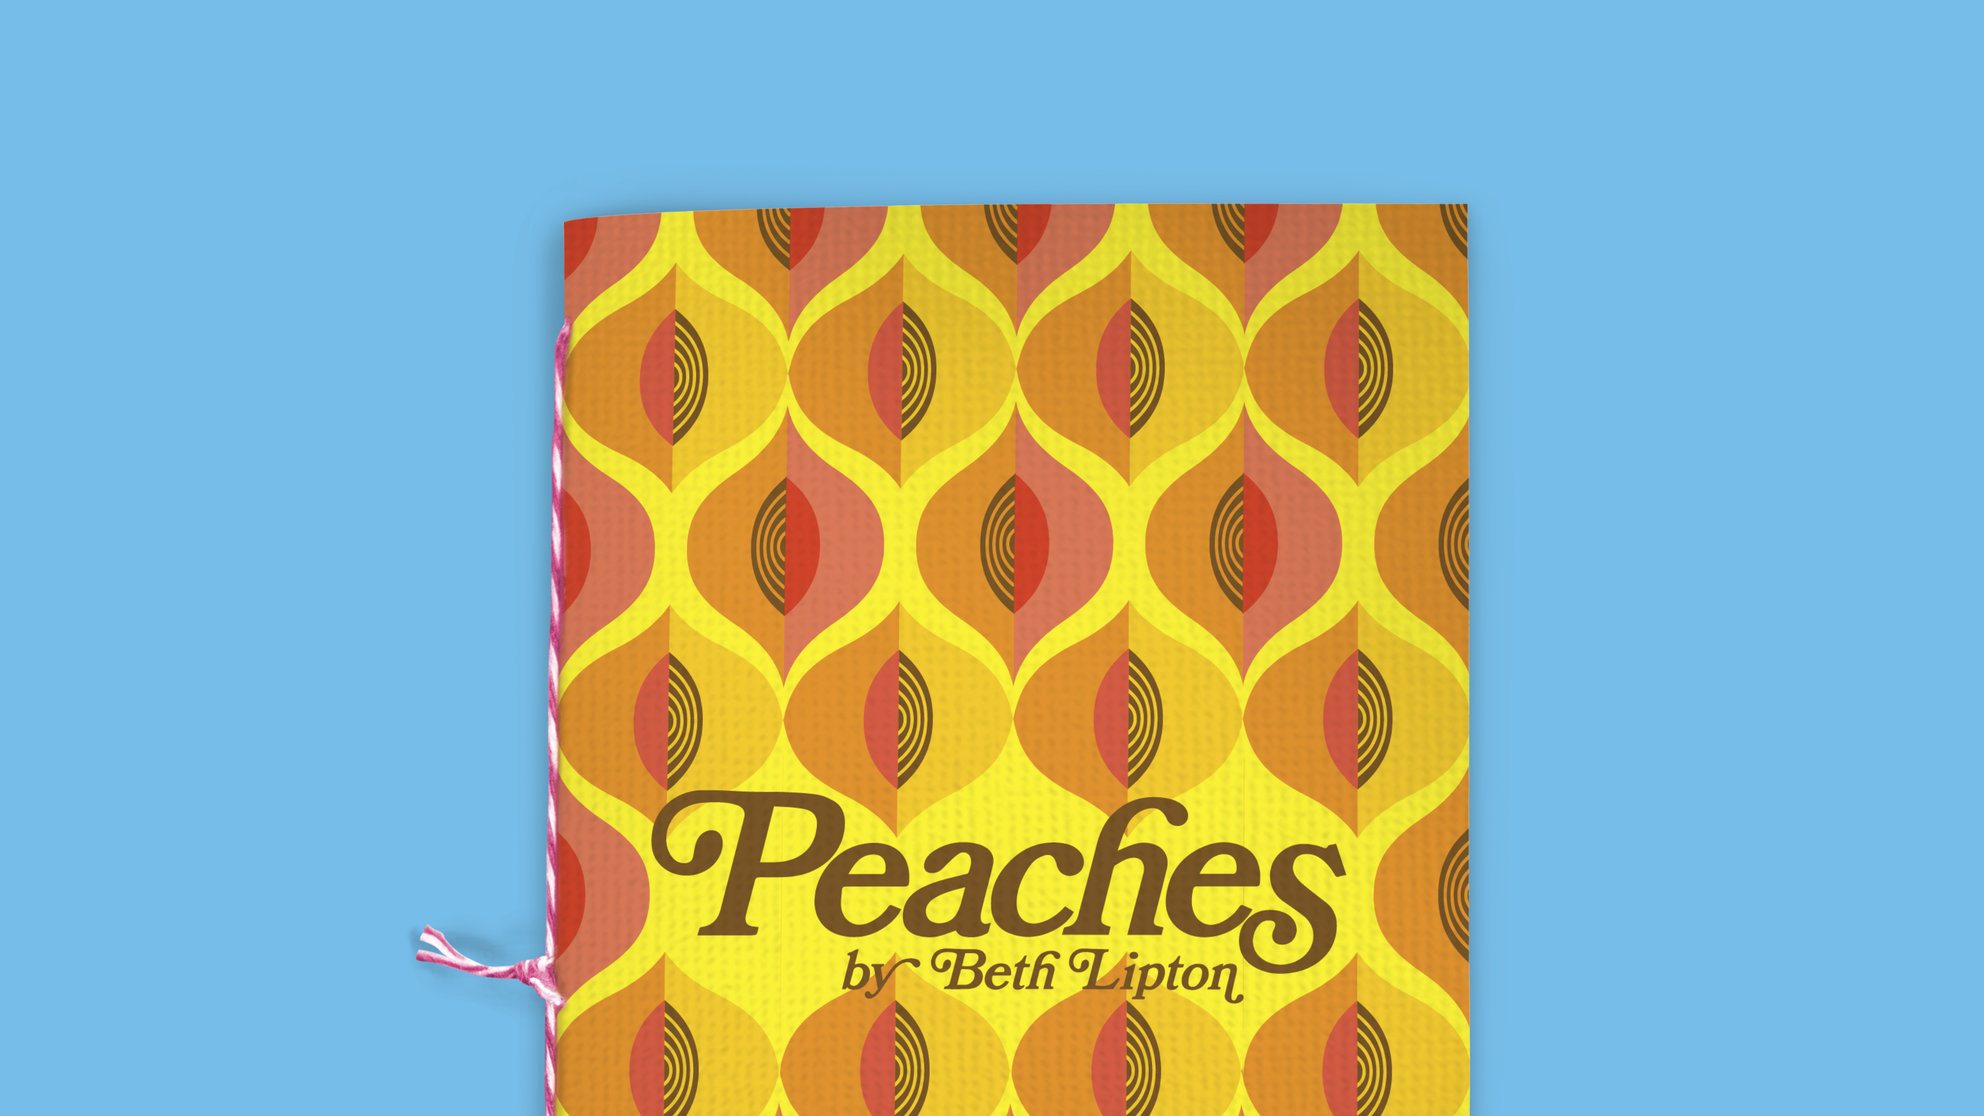 peaches_cover-copy.jpg